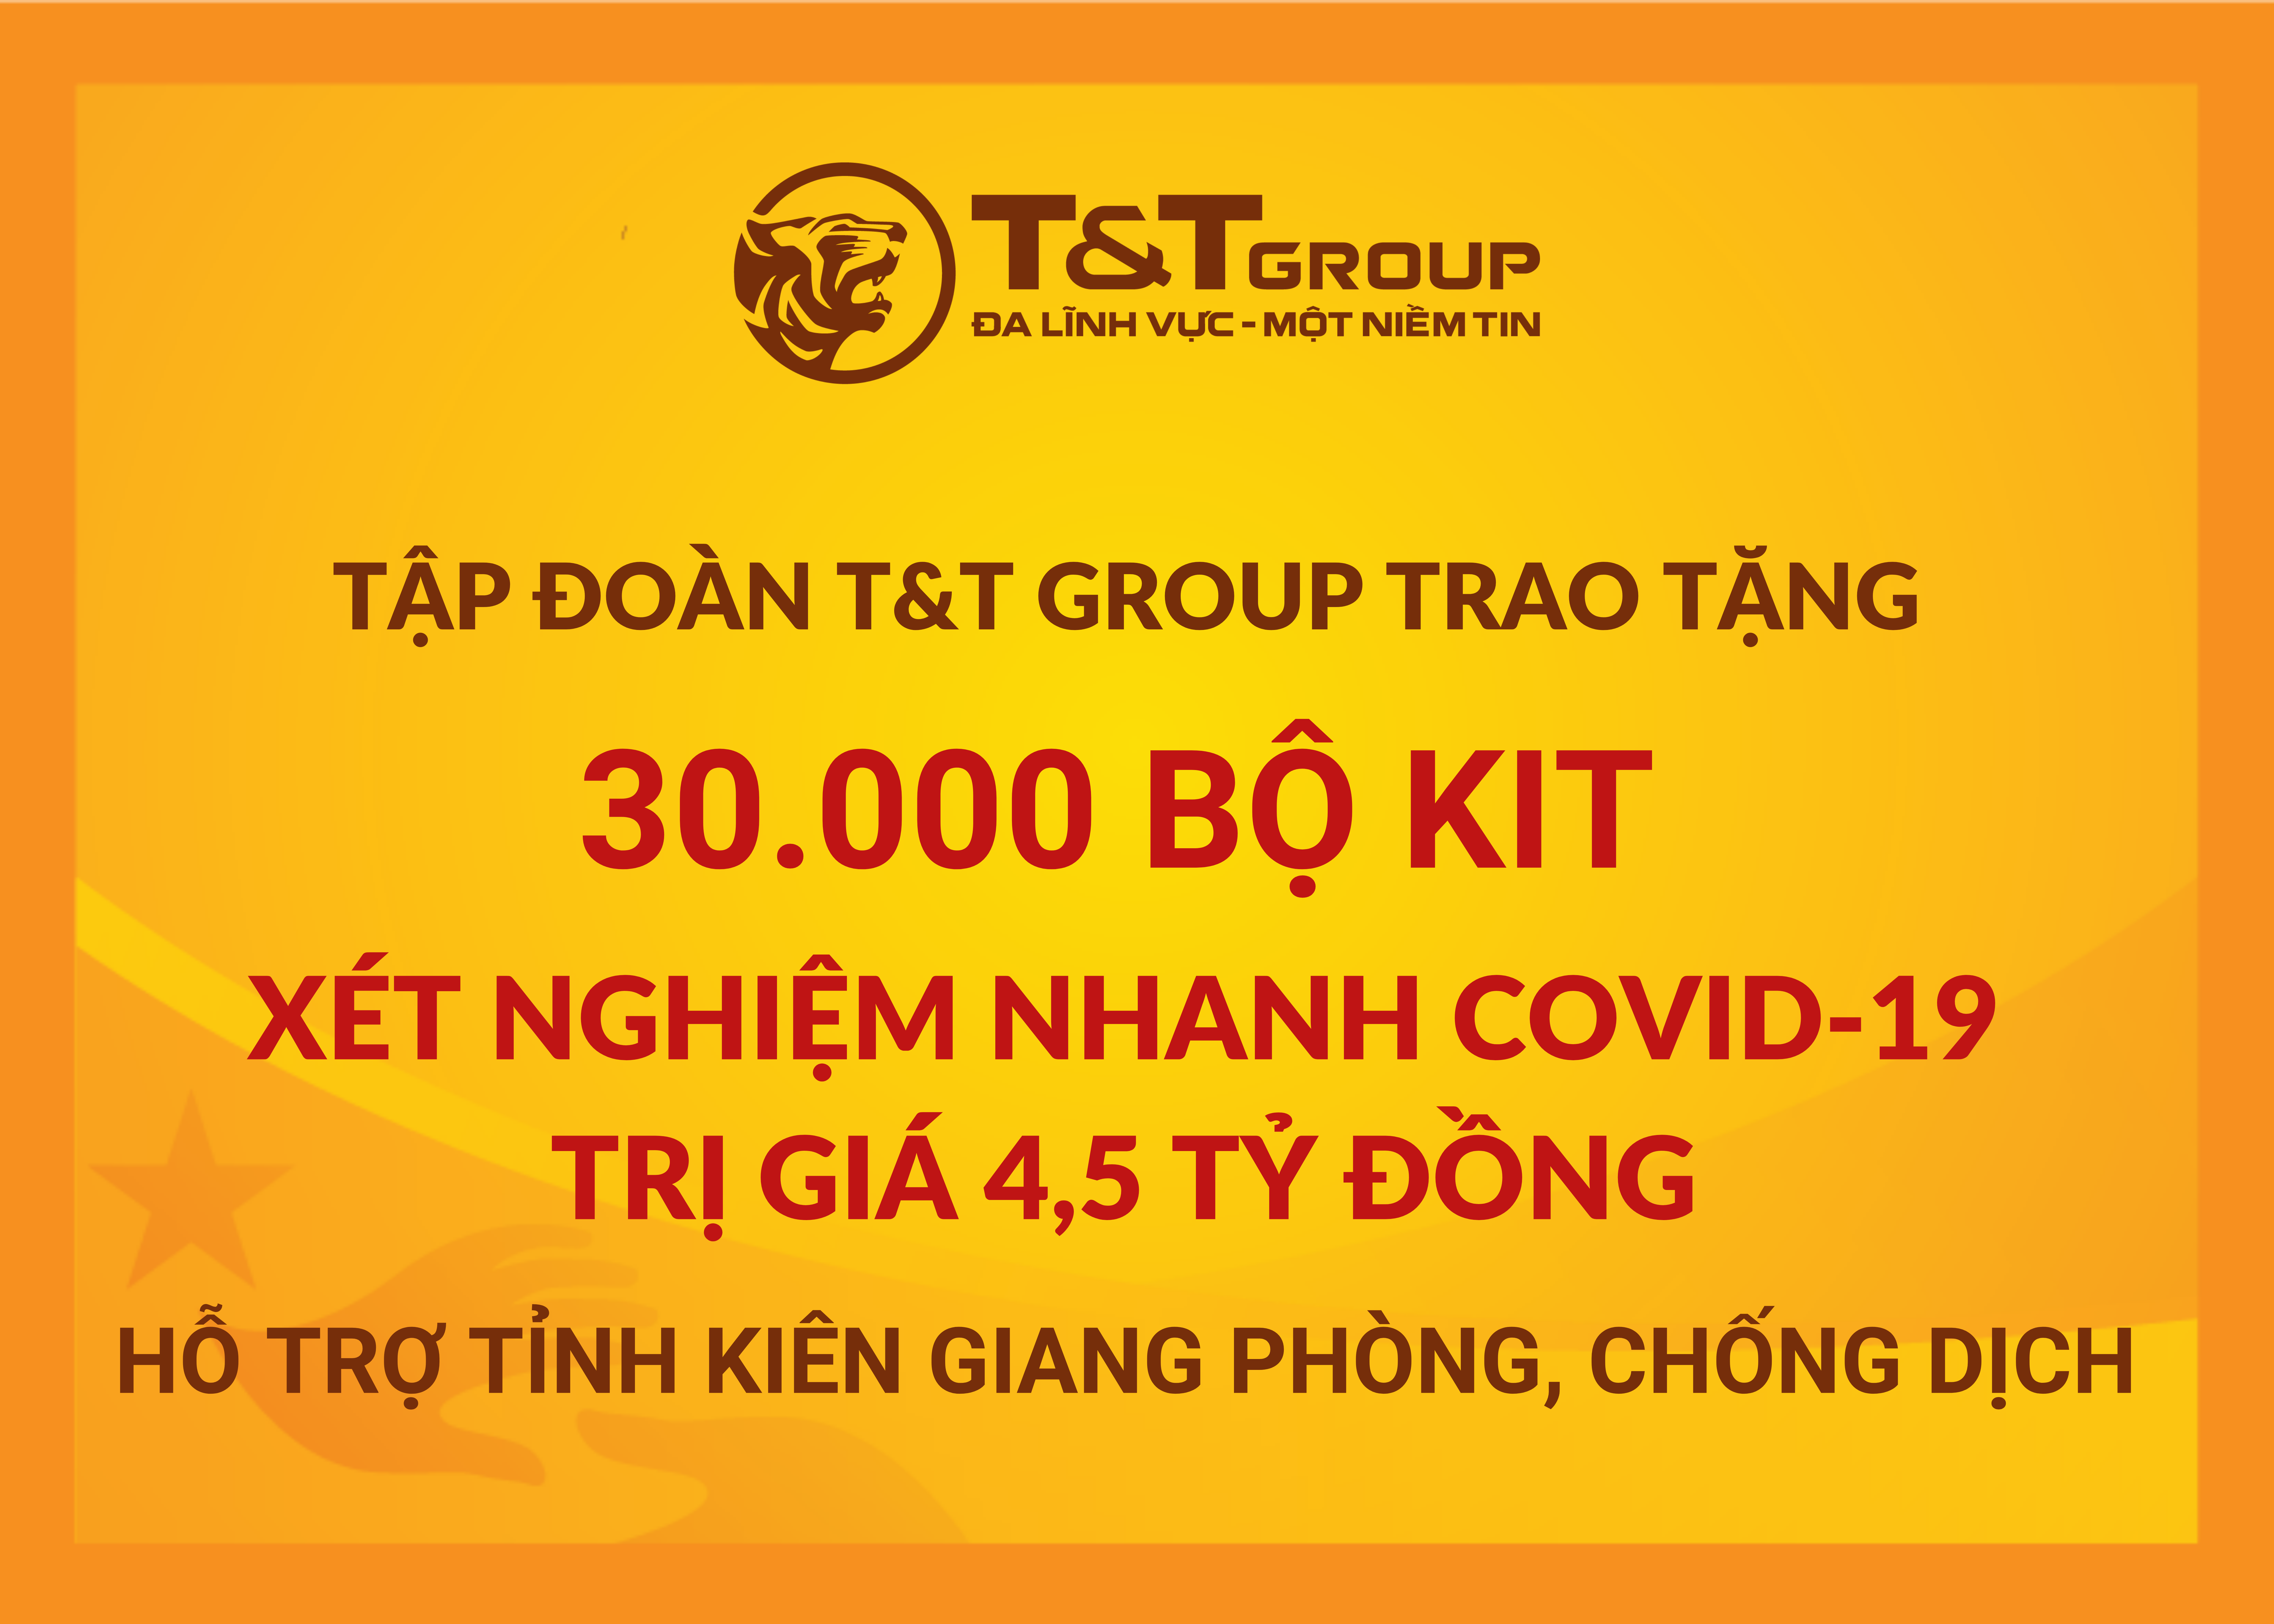 anh-3-1630296226.png